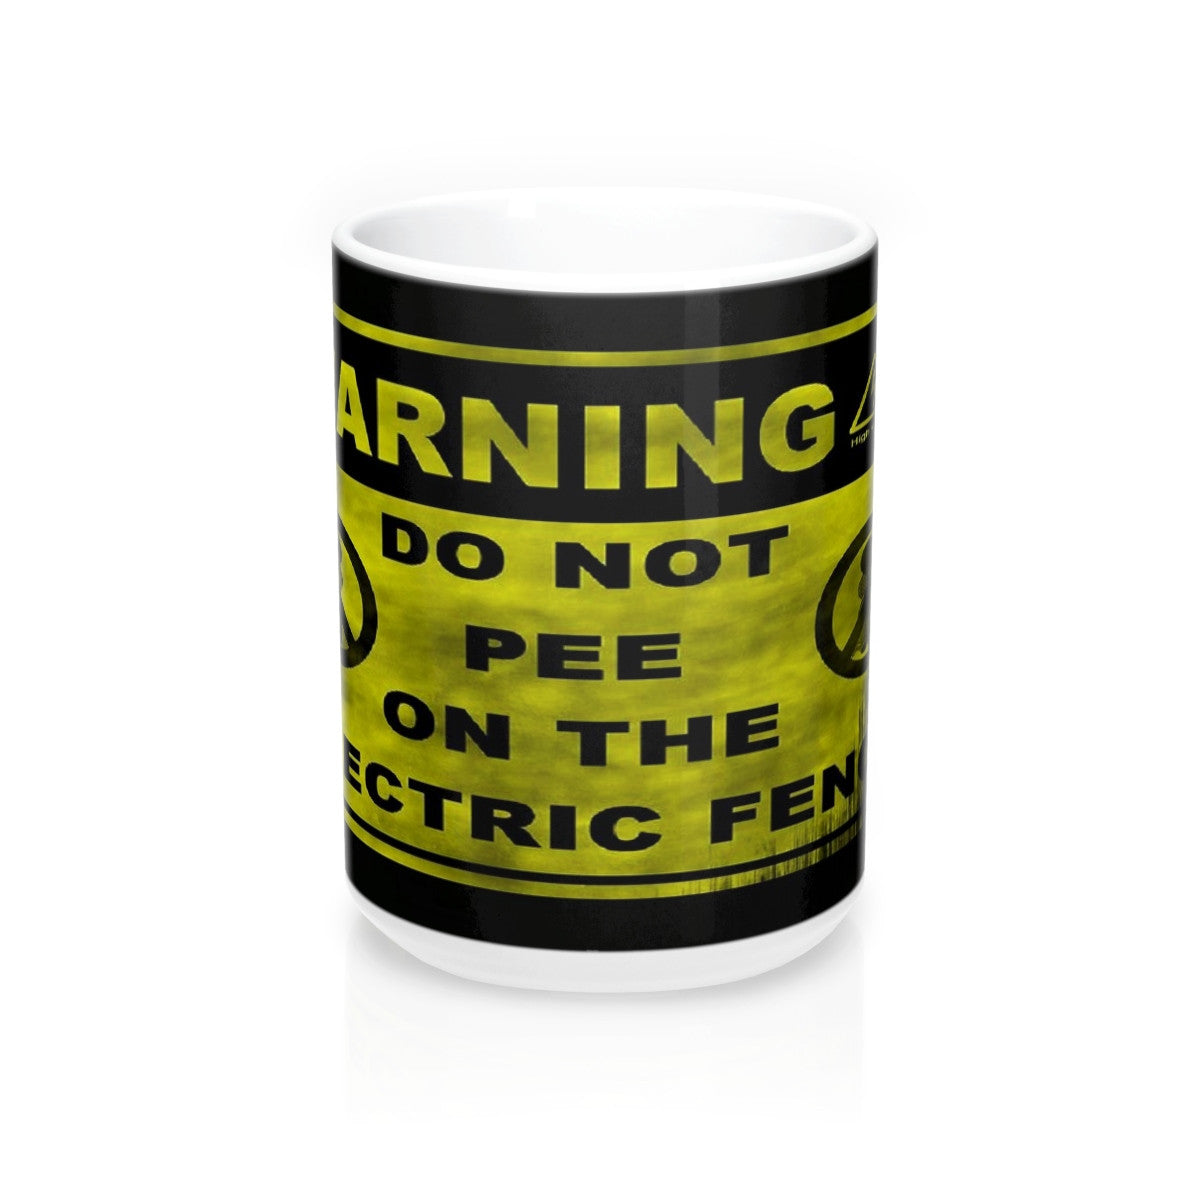 Funny do not pee on fence meme Mug 15oz